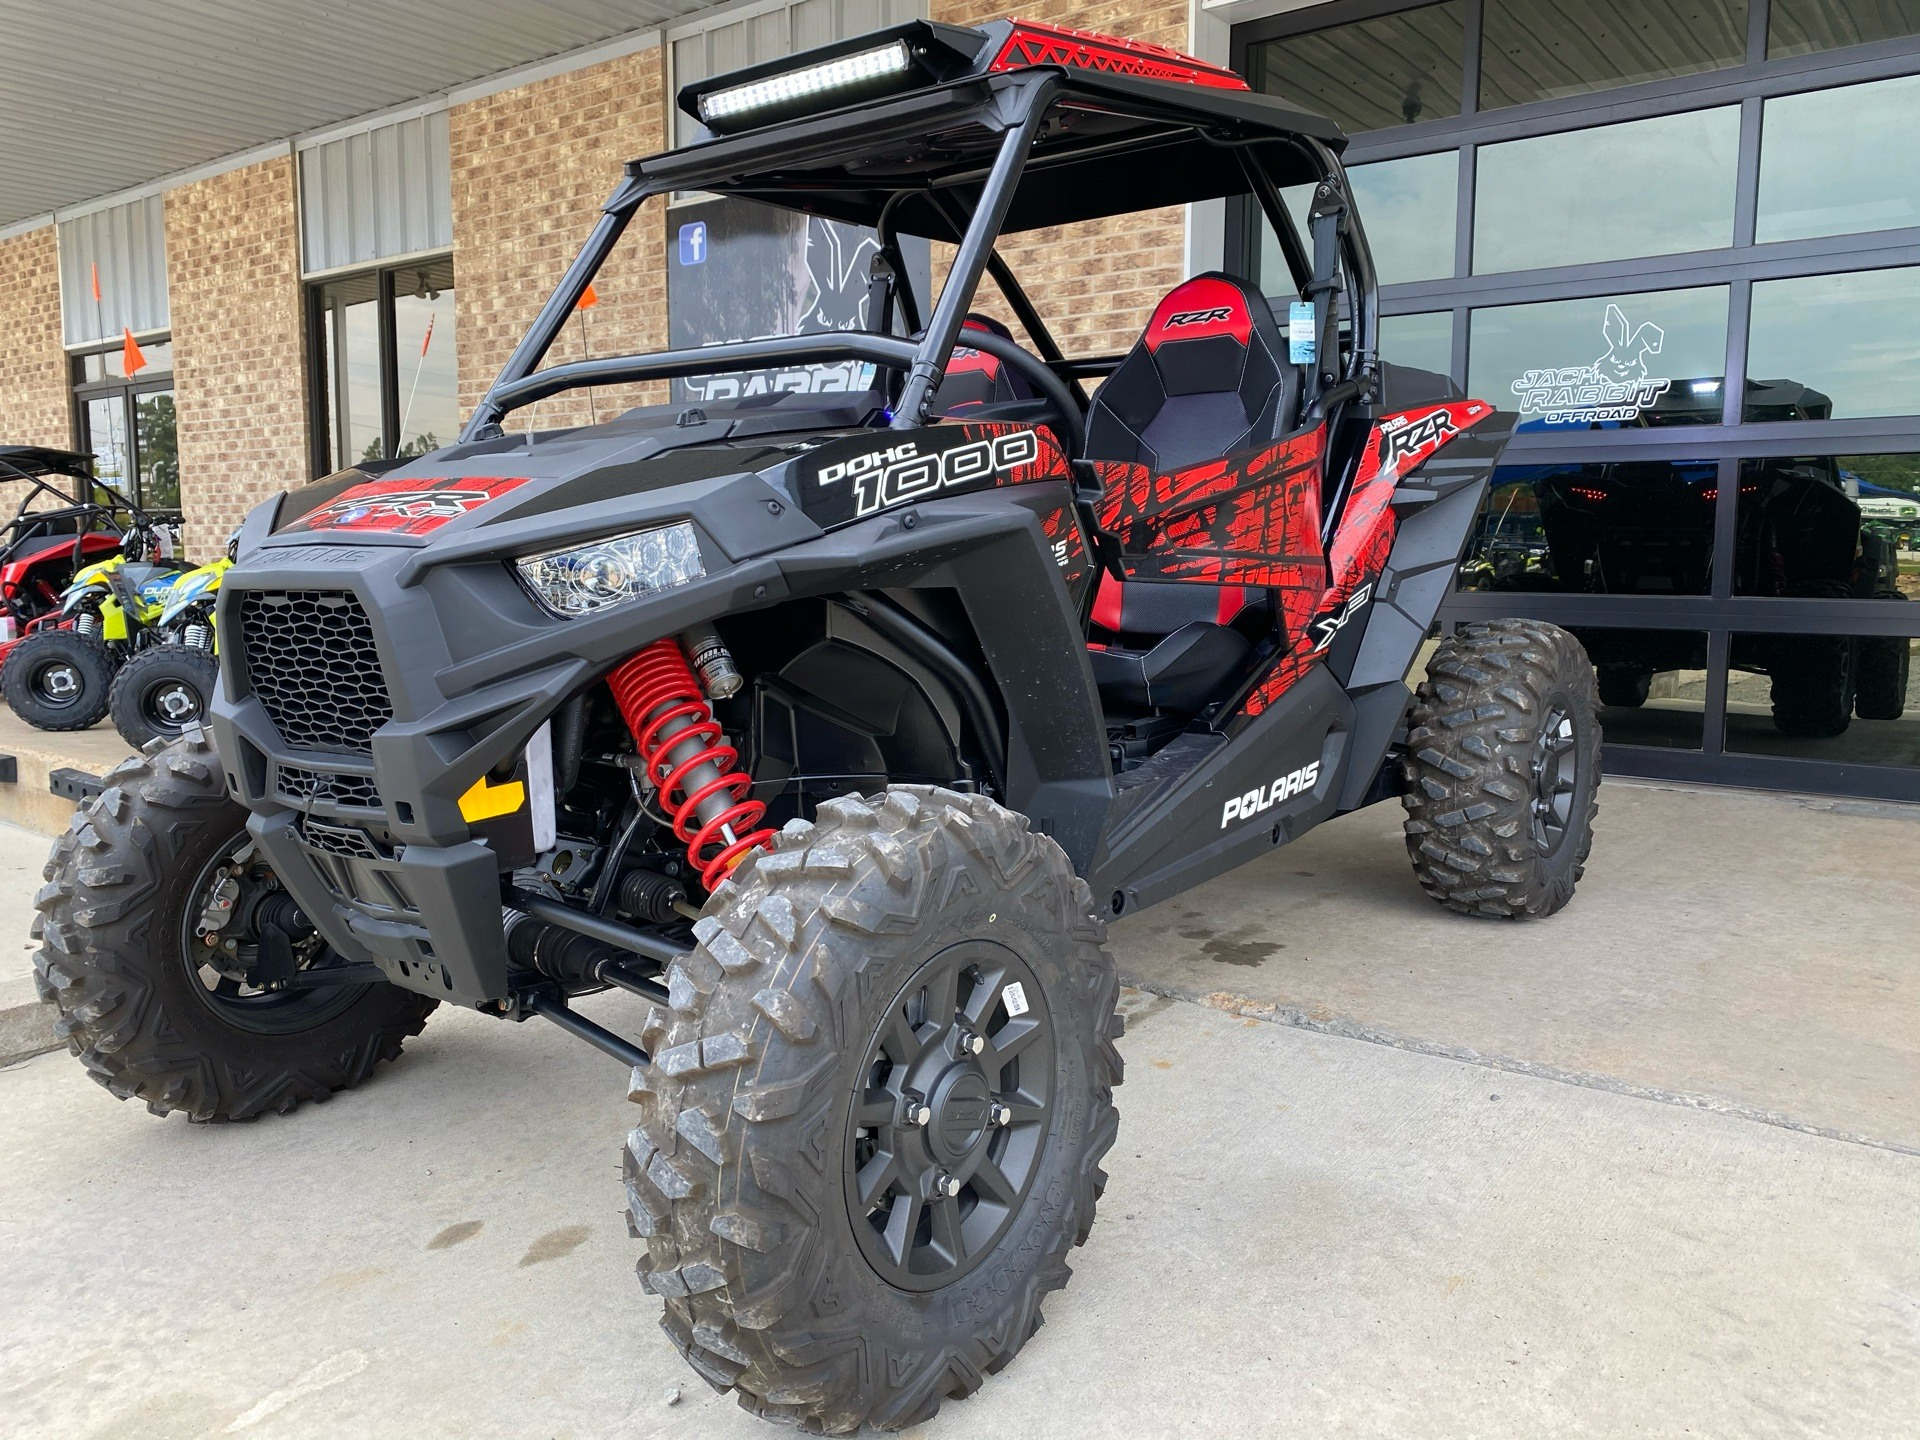 2018 Polaris RZR XP 1000 EPS in Marshall, Texas - Photo 2